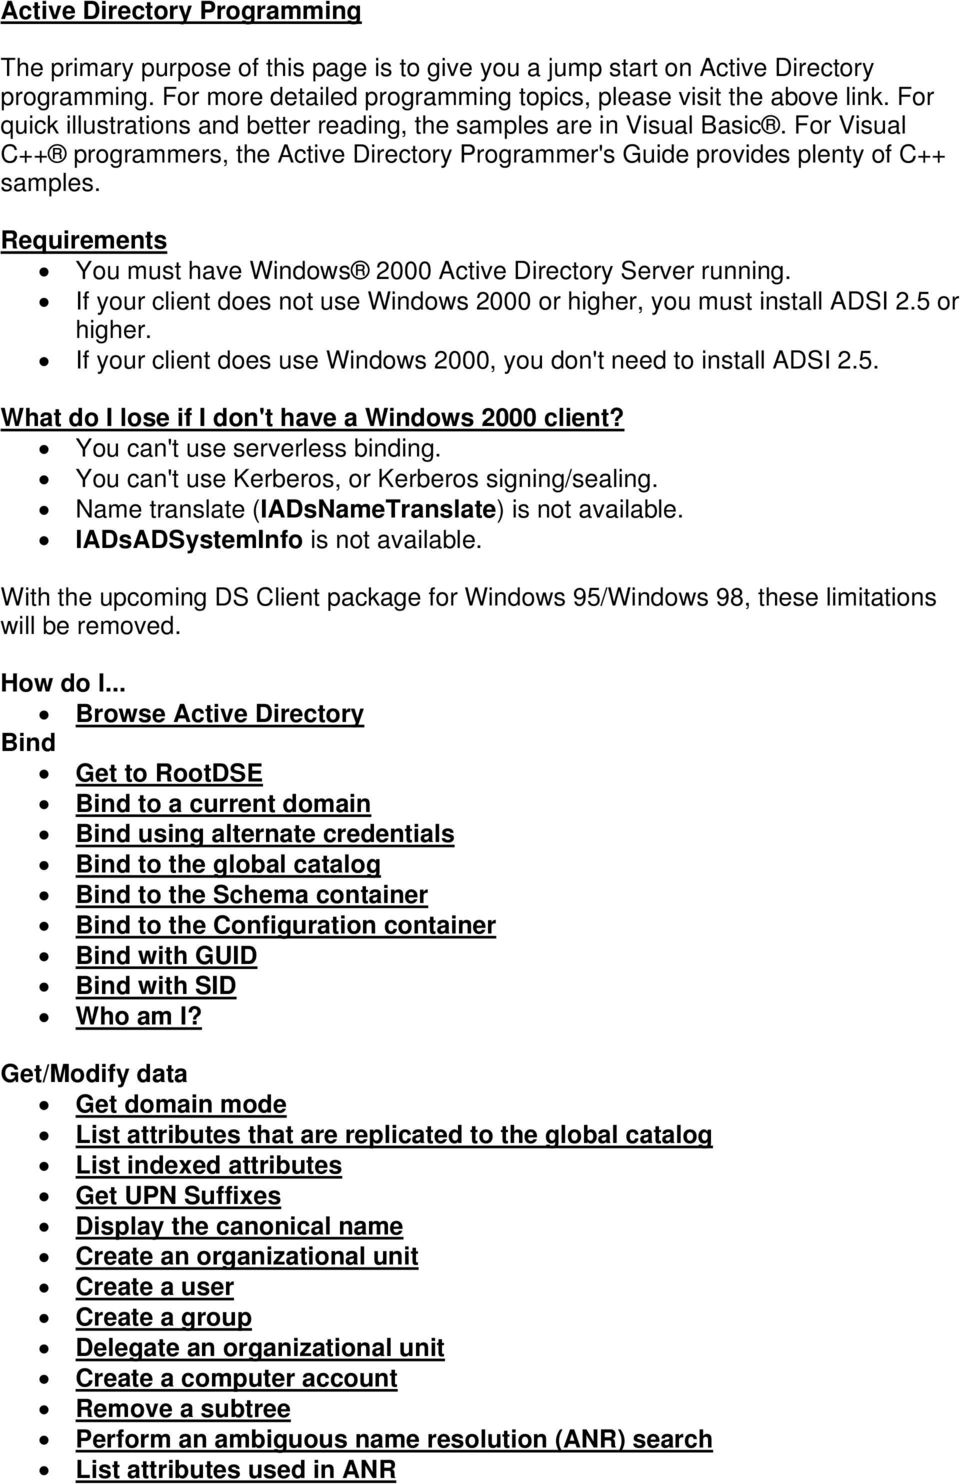 Requirements You must have Windows 2000 Active Directory Server running. If your client does not use Windows 2000 or higher, you must install ADSI 2.5 or higher.